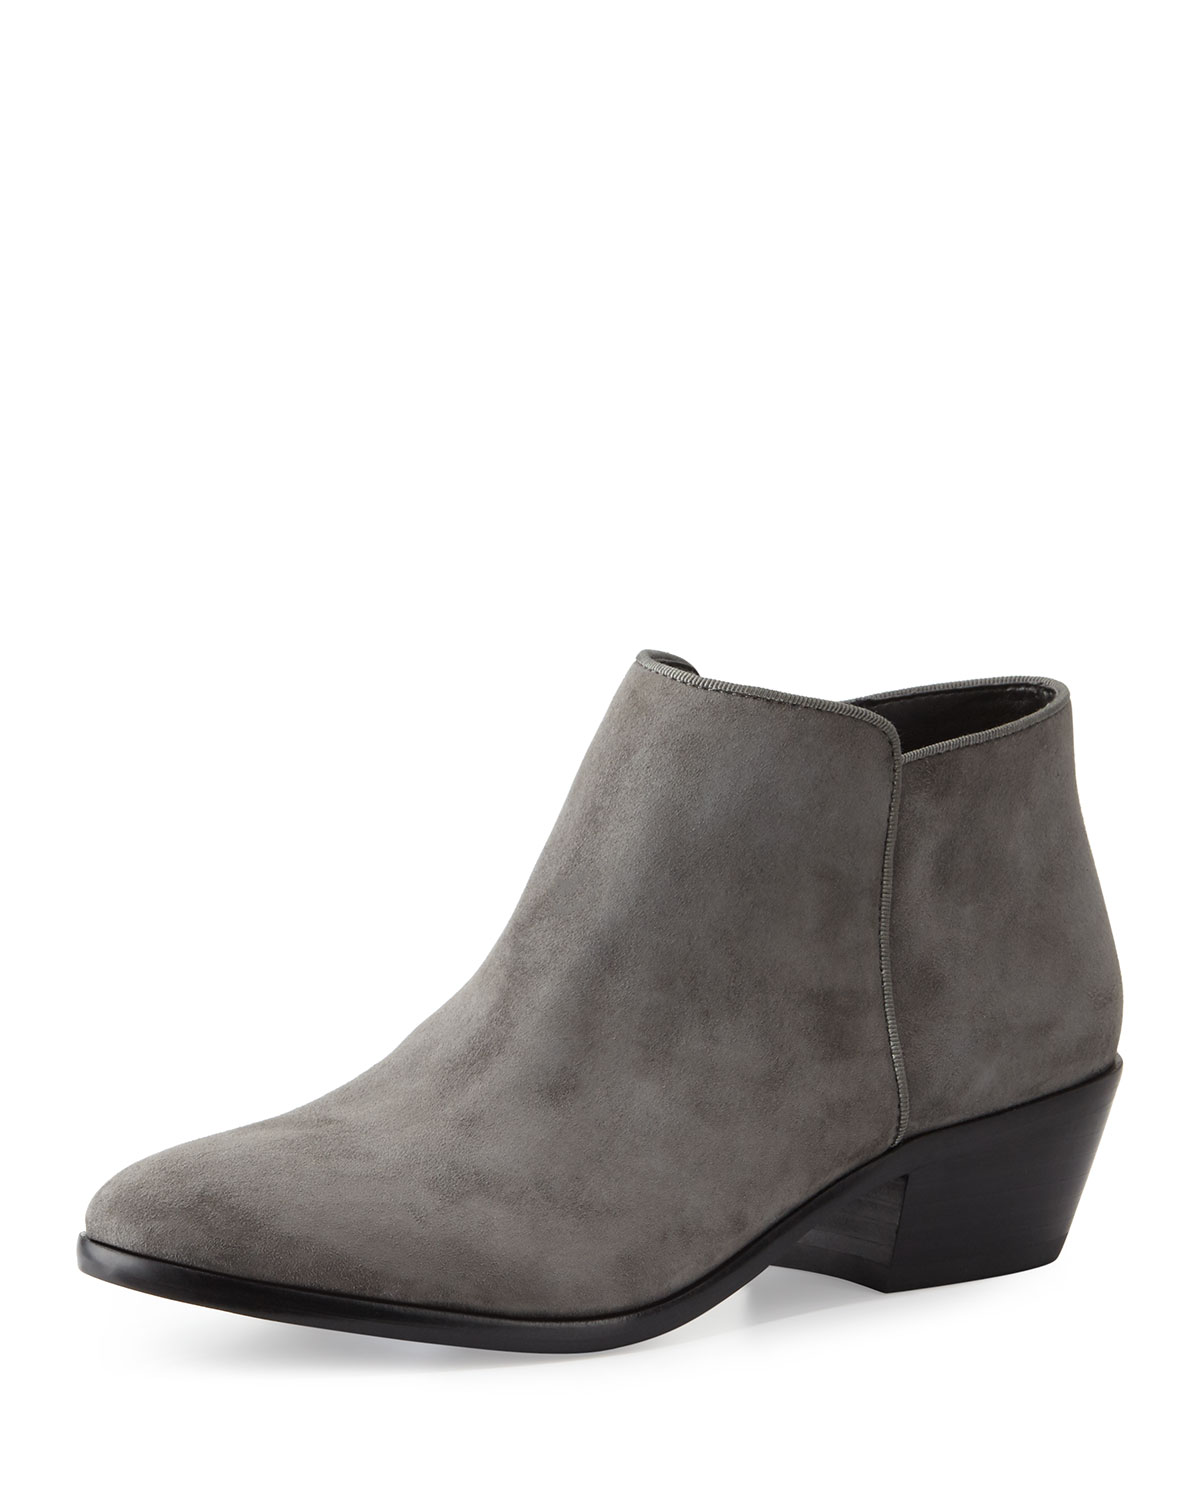 f0a298b0d Sam Edelman Petty Suede Ankle Boot